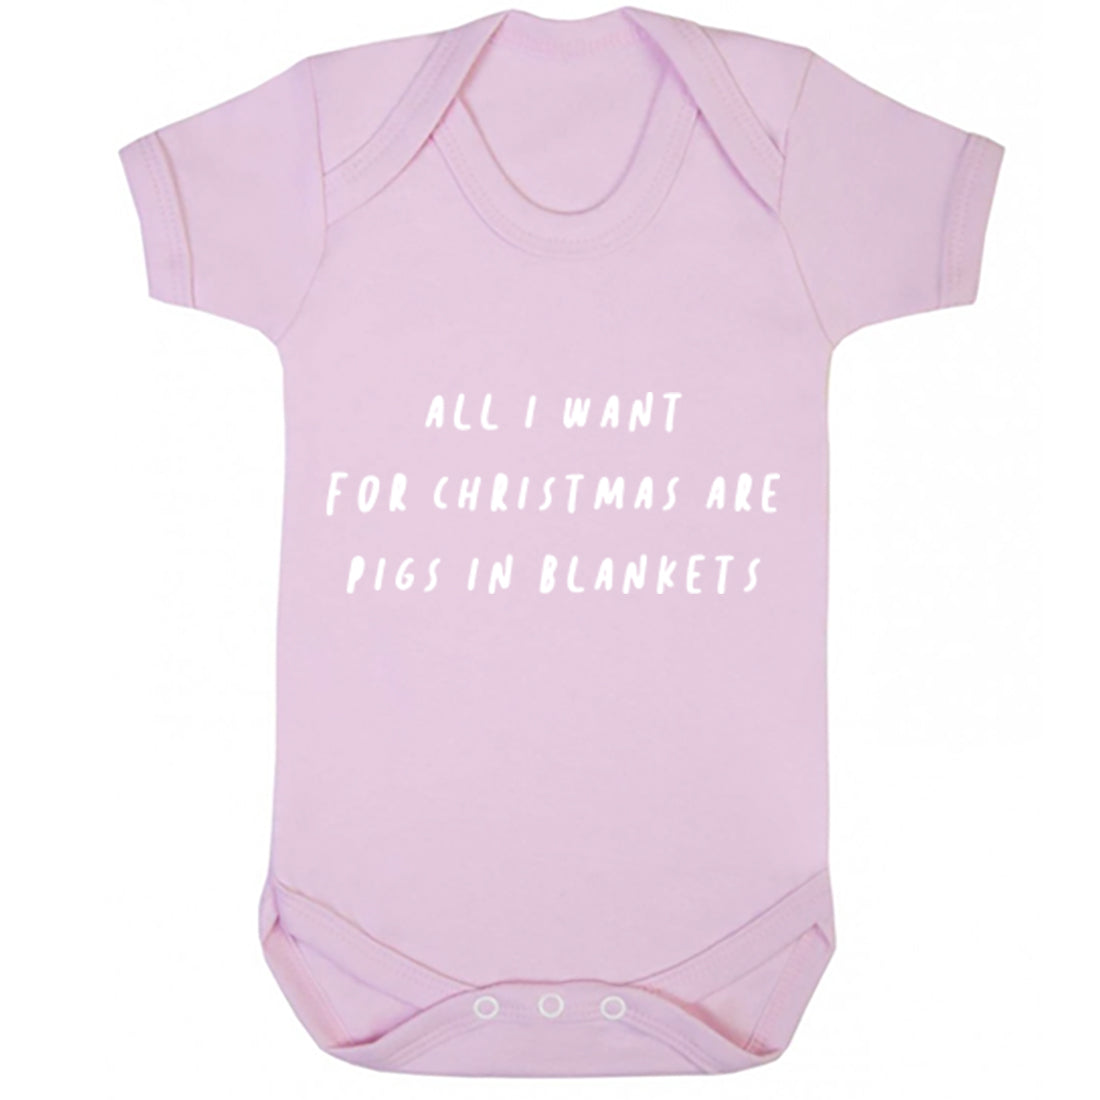 All I Want For Christmas Is Pigs In Blankets Baby Vest K2469 - Illustrated Identity Ltd.